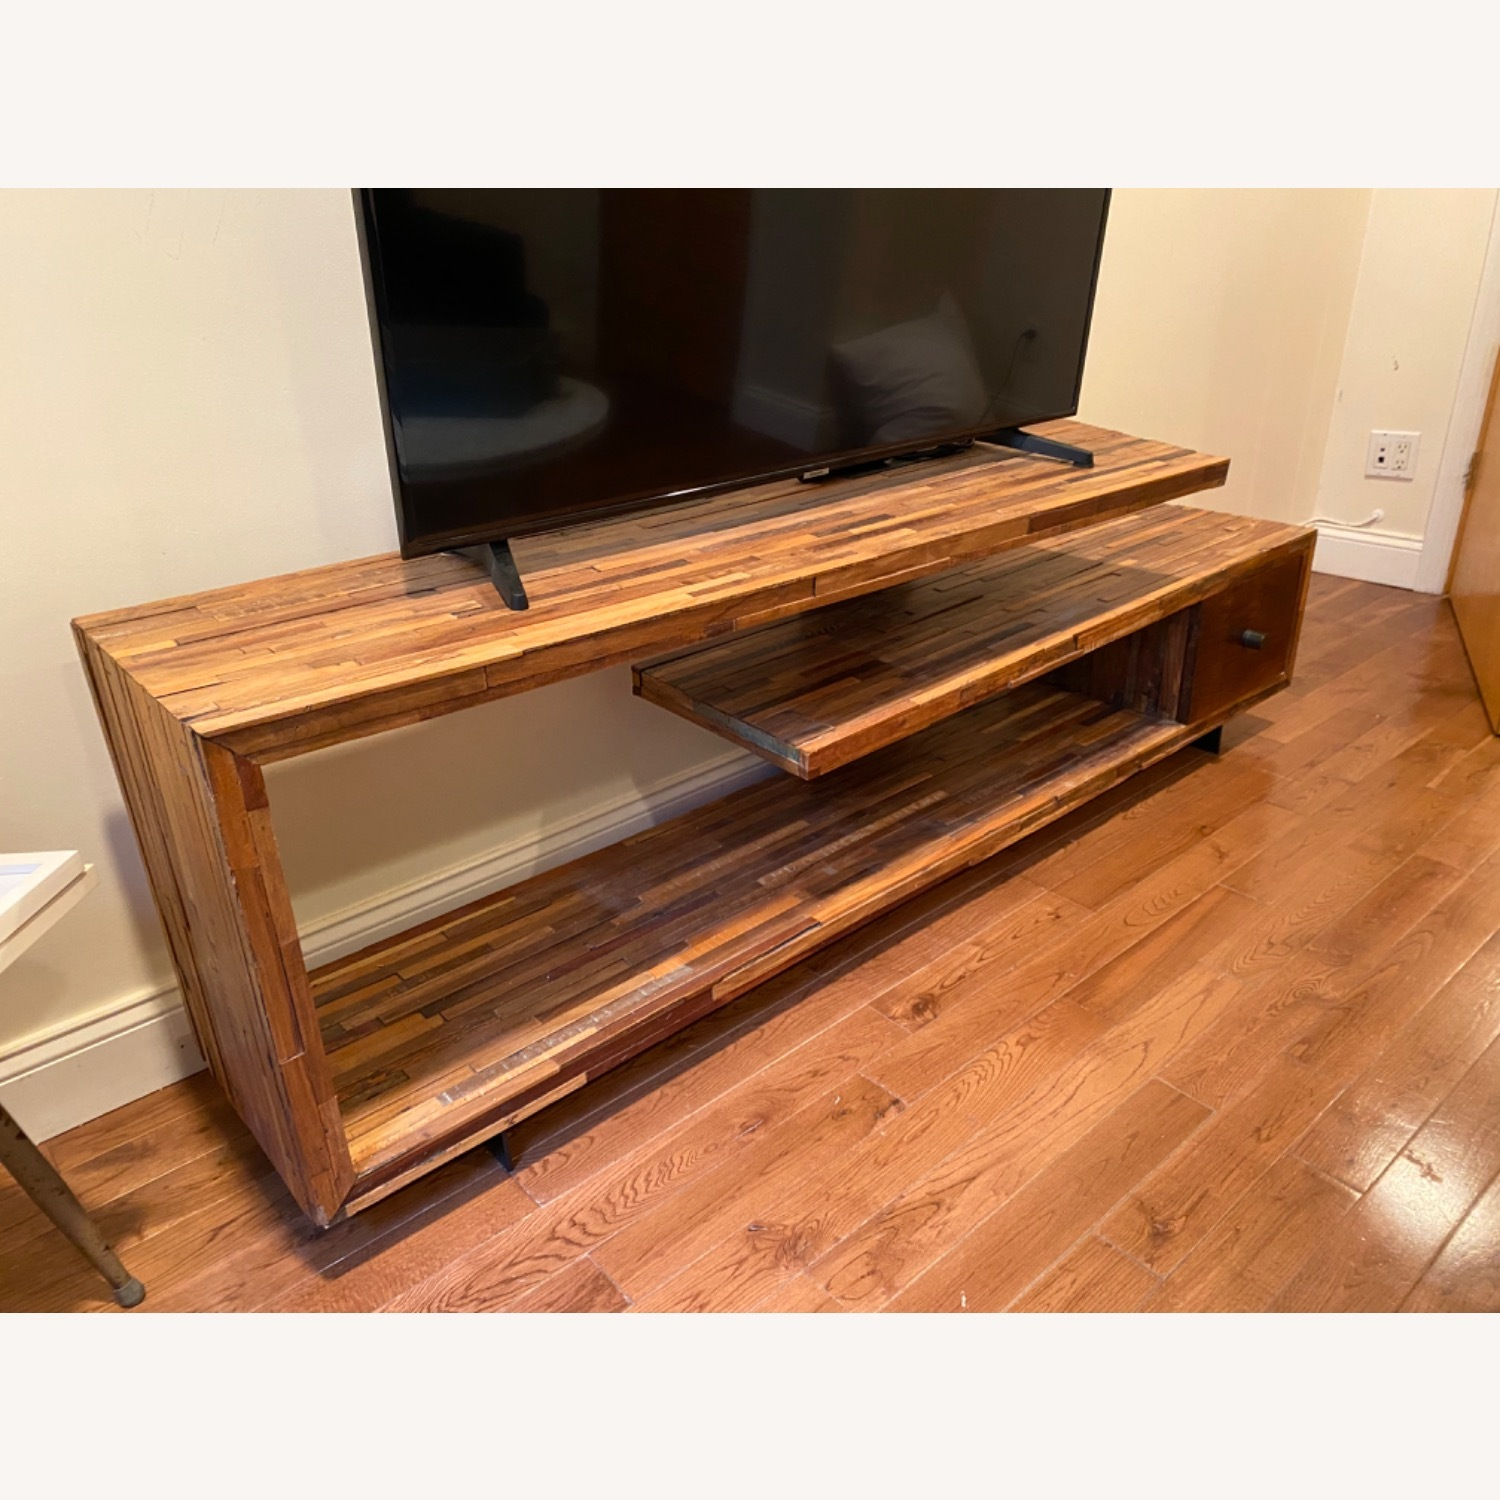 West Elm Staggered Wood Media Console - image-1